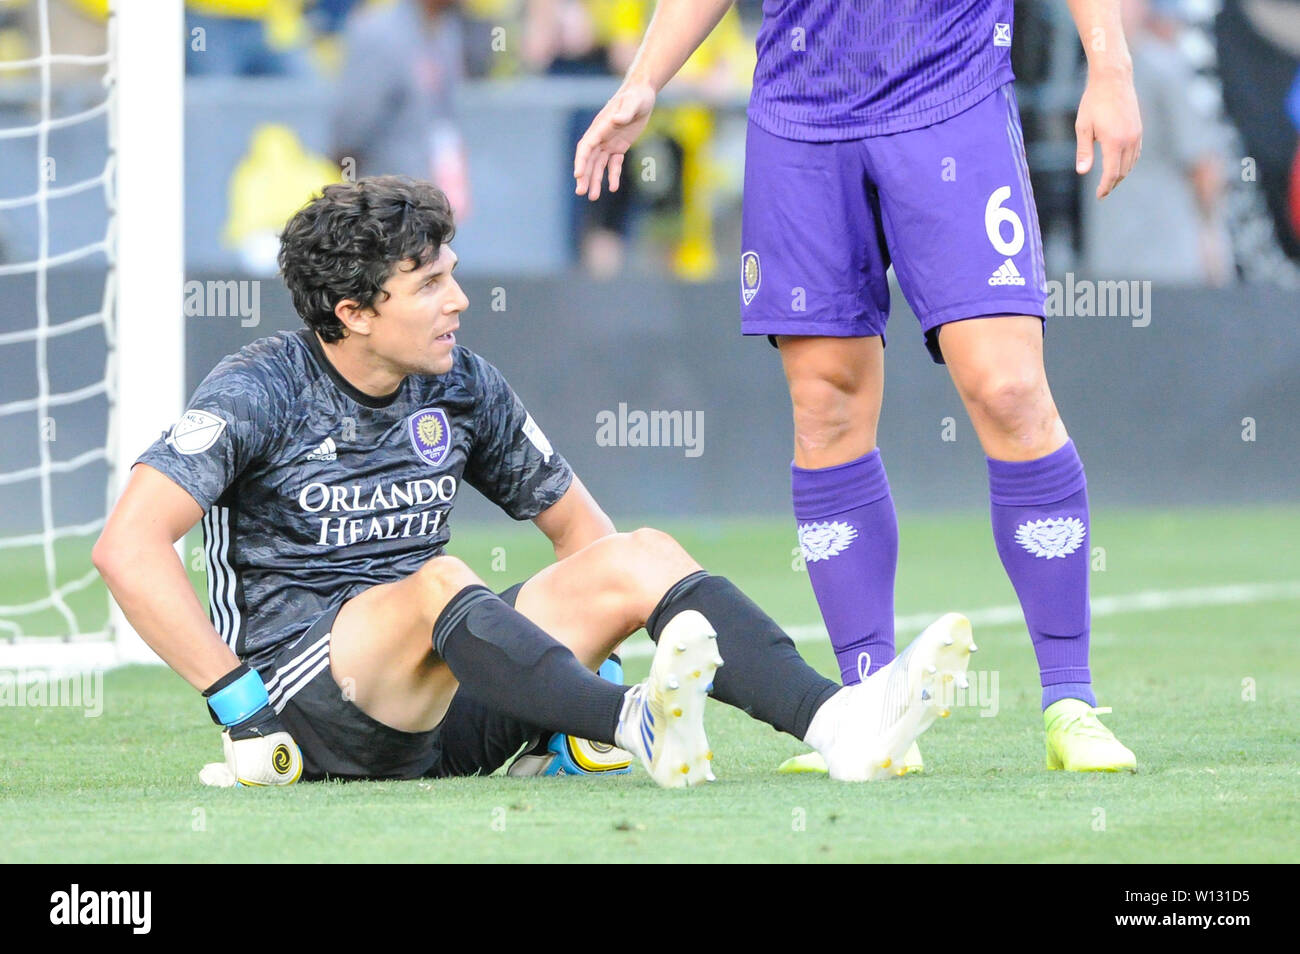 Saturday, June 29, 2019: Orlando City goalkeeper Brian Rowe (23) the first half of the match between Orlando City and Columbus Crew SC at MAPFRE Stadium, in Columbus OH. Mandatory Photo Credit: Dorn Byg/Cal Sport Media. Orlando City 1 - Columbus Crew SC 0 after the first half - Stock Image